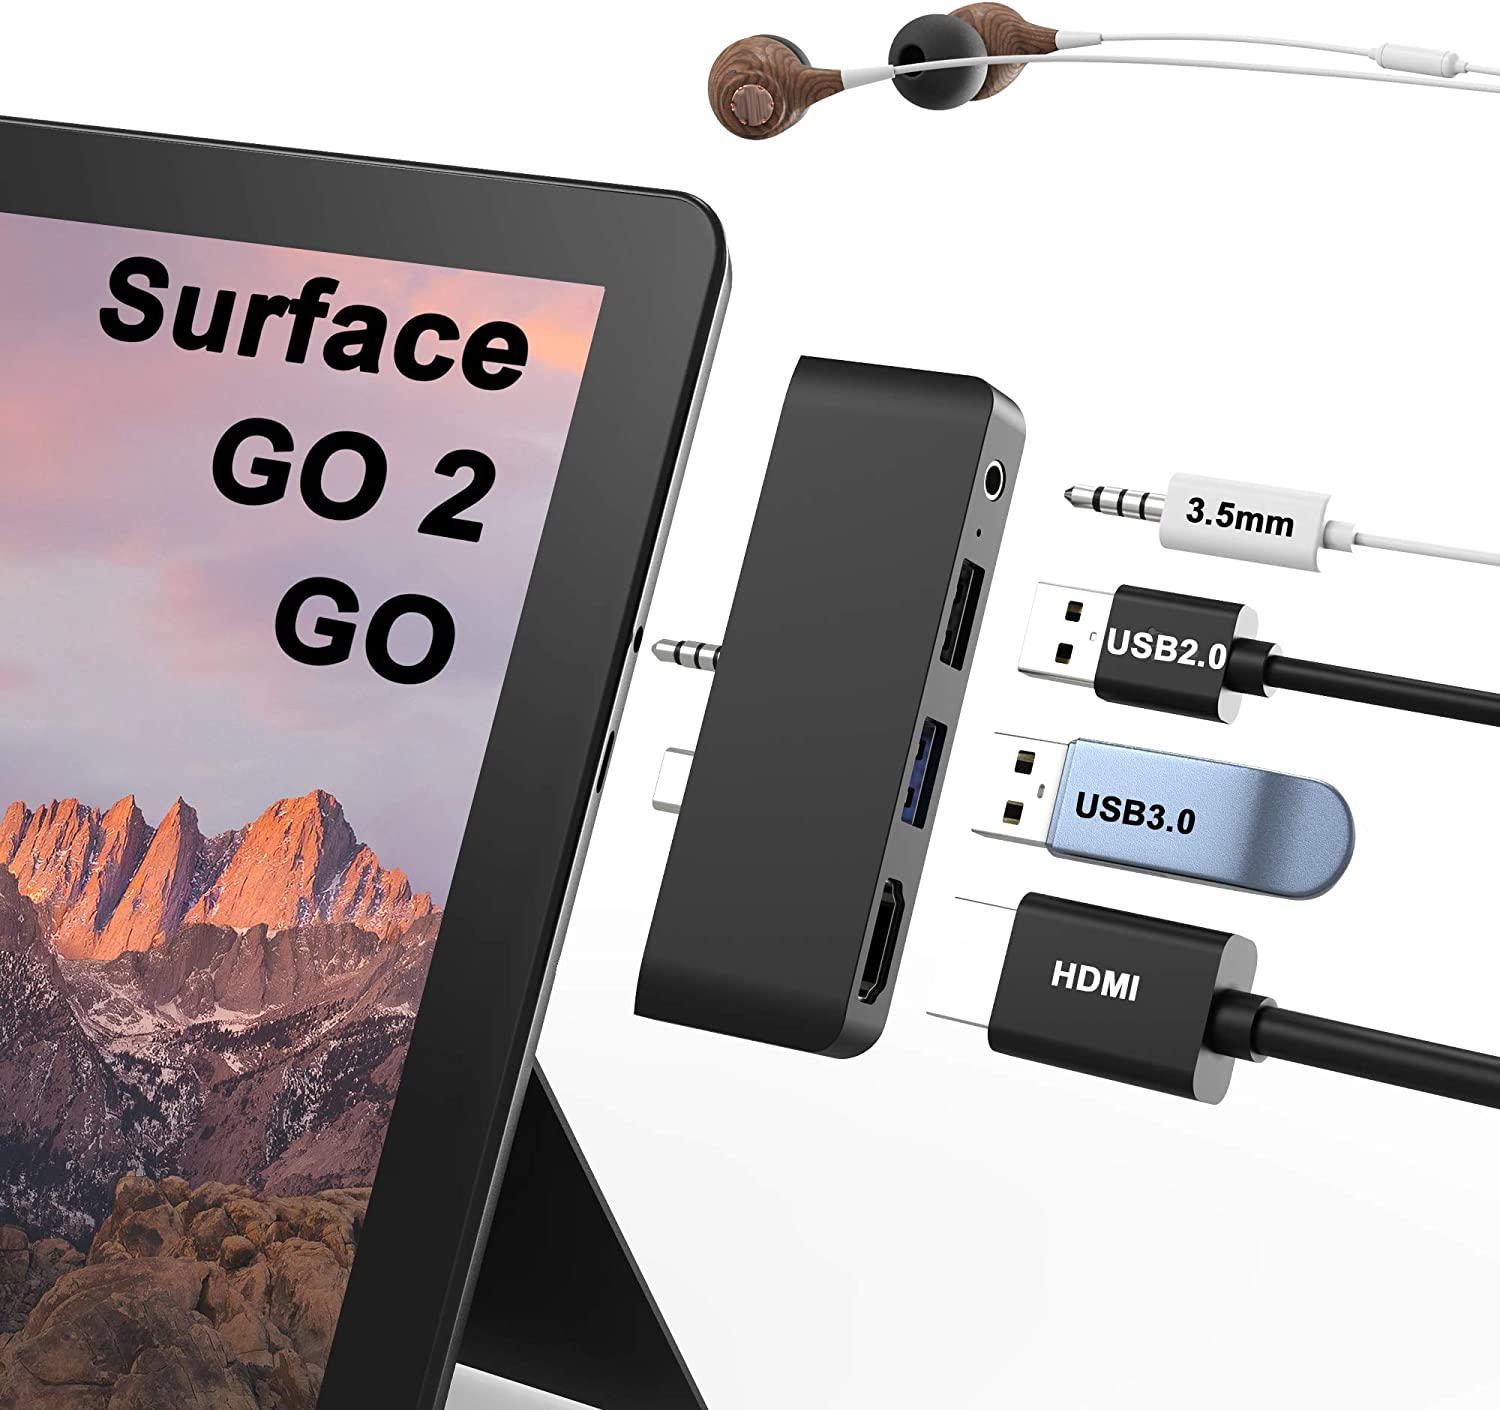 Surface Go Hub, Surface Go 2 Docking Station 4-in-2 USB C 3.5mm Earphones Jack, 4K30HZ HDMI Adapter USB 3.0&USB 2.0 for Microsoft Surface Go 2 Dock Accessories